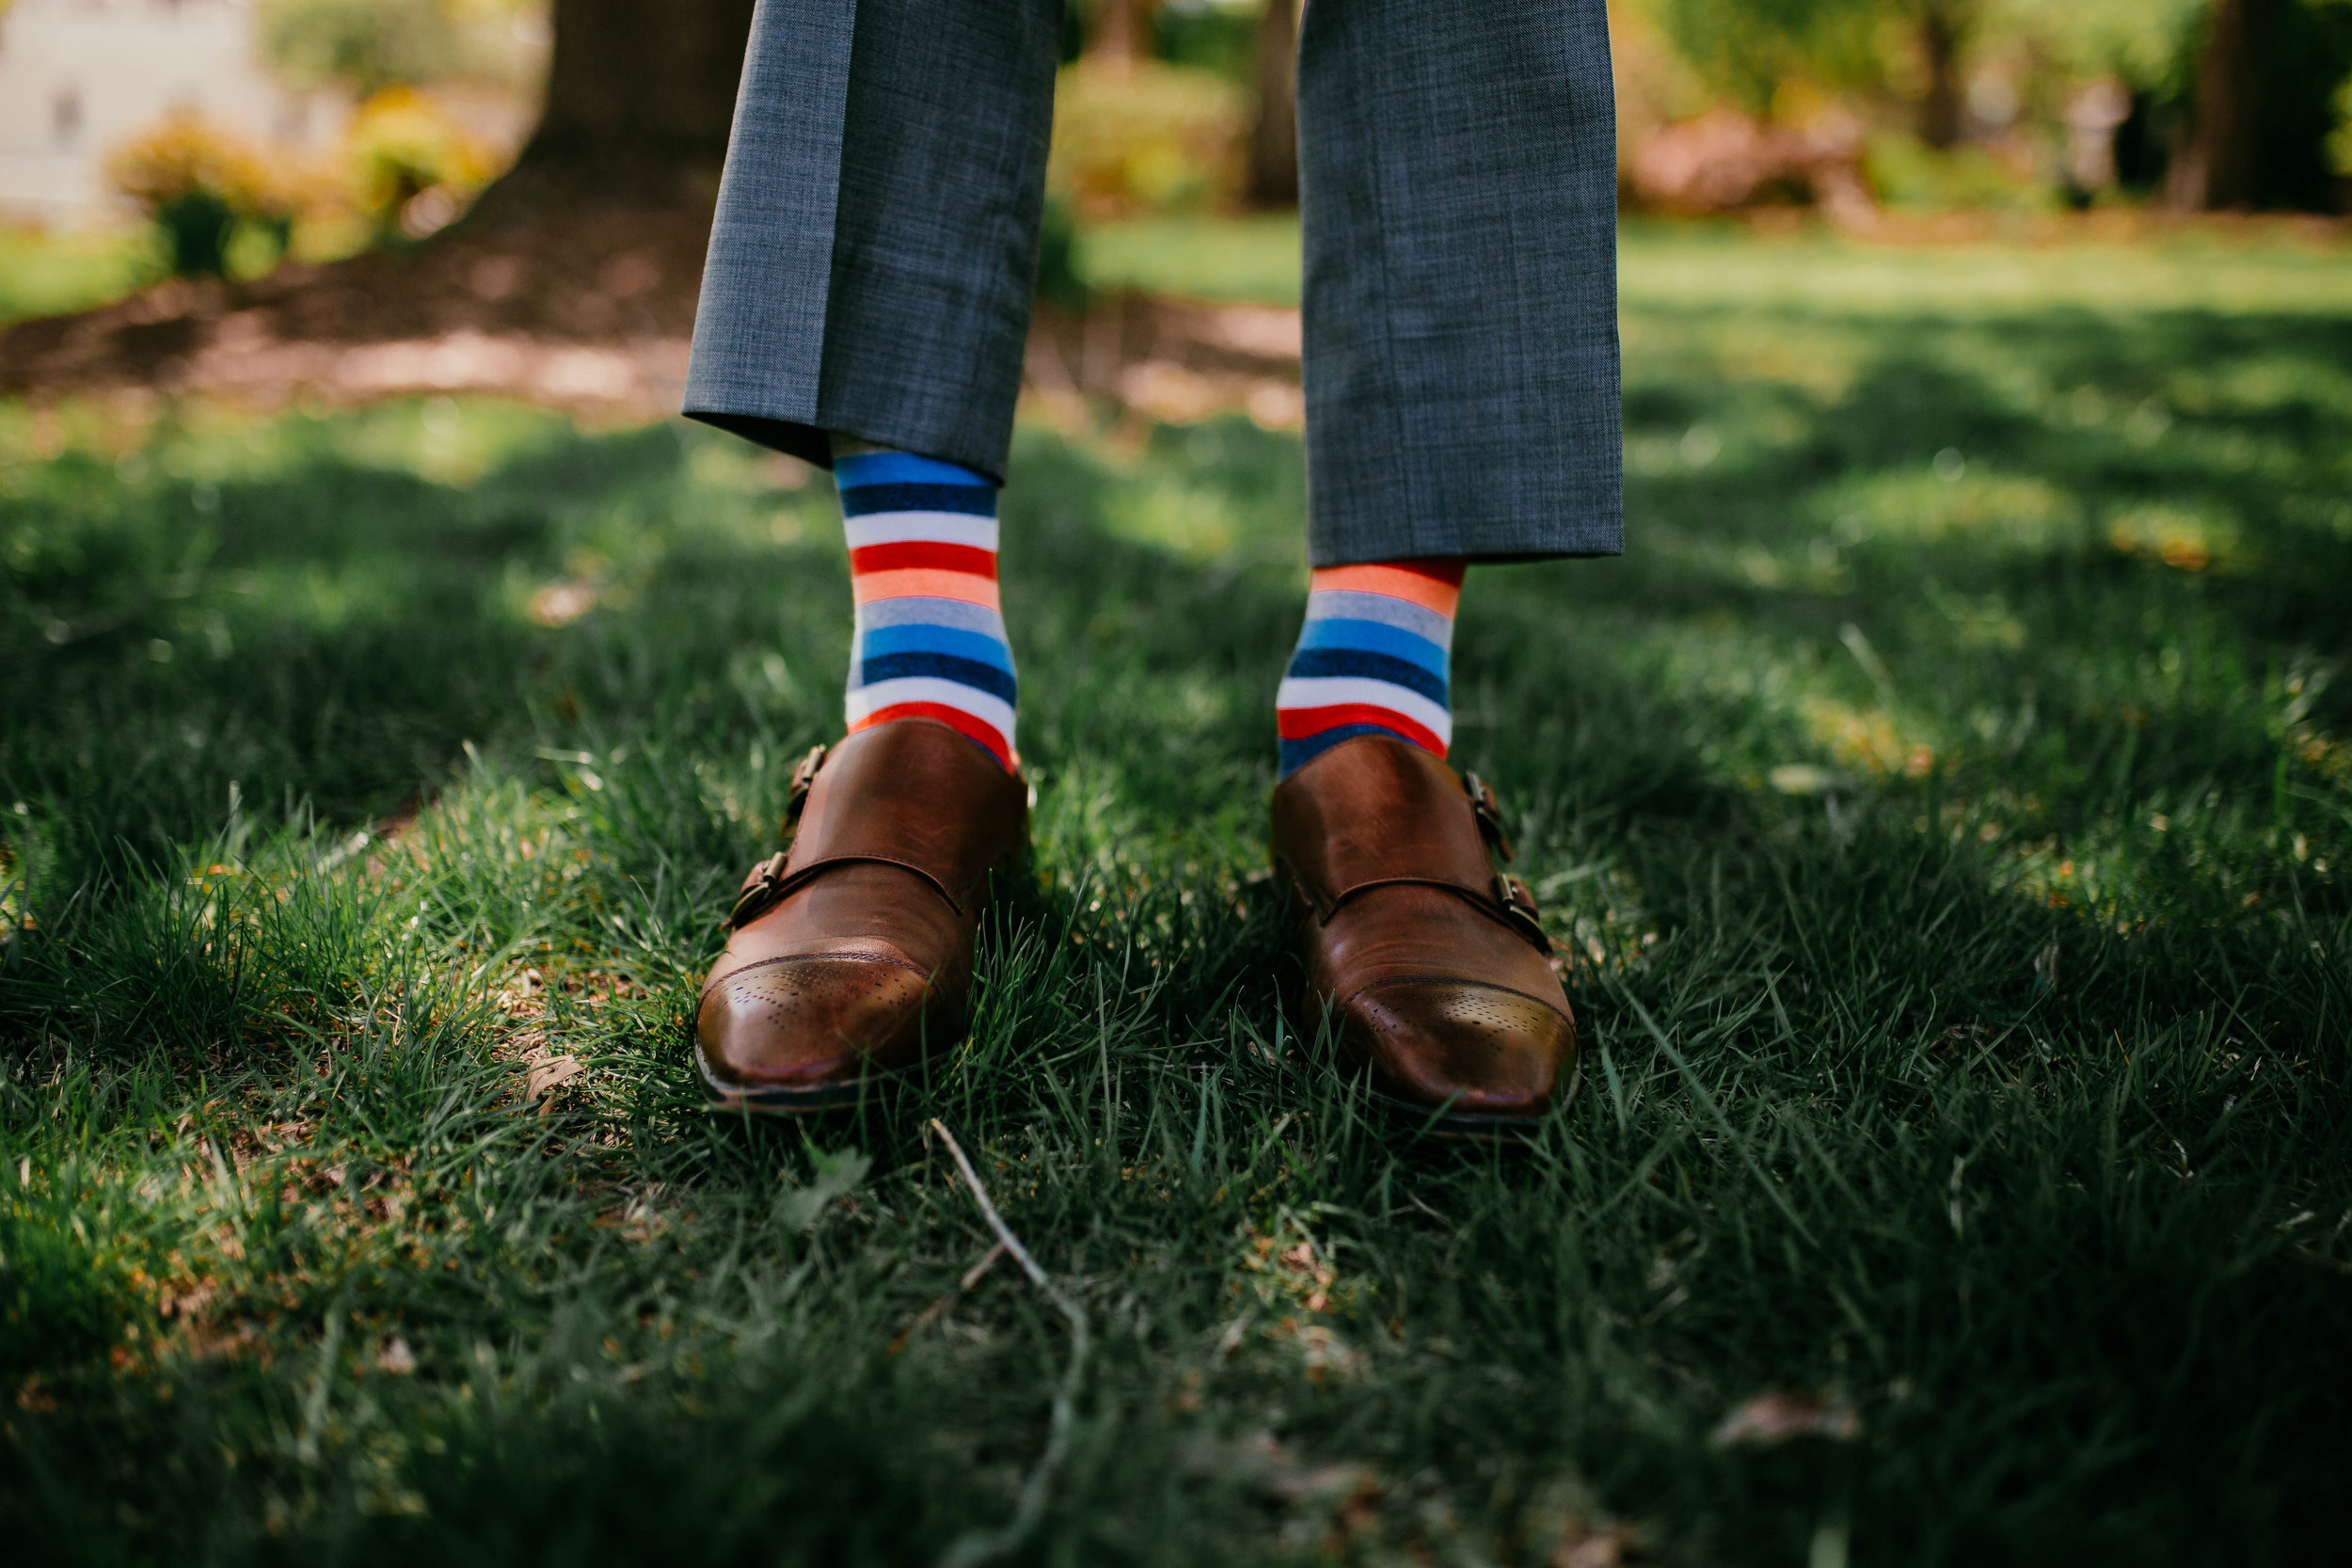 Bert & Lauren's North Kansas City Spring Wedding | Hannahill Photography | Raleigh Durham Photographer | North Carolina Wedding Photography | Family Photographer | Wedding photographer | the grooms colorful socks for the day of the wedding